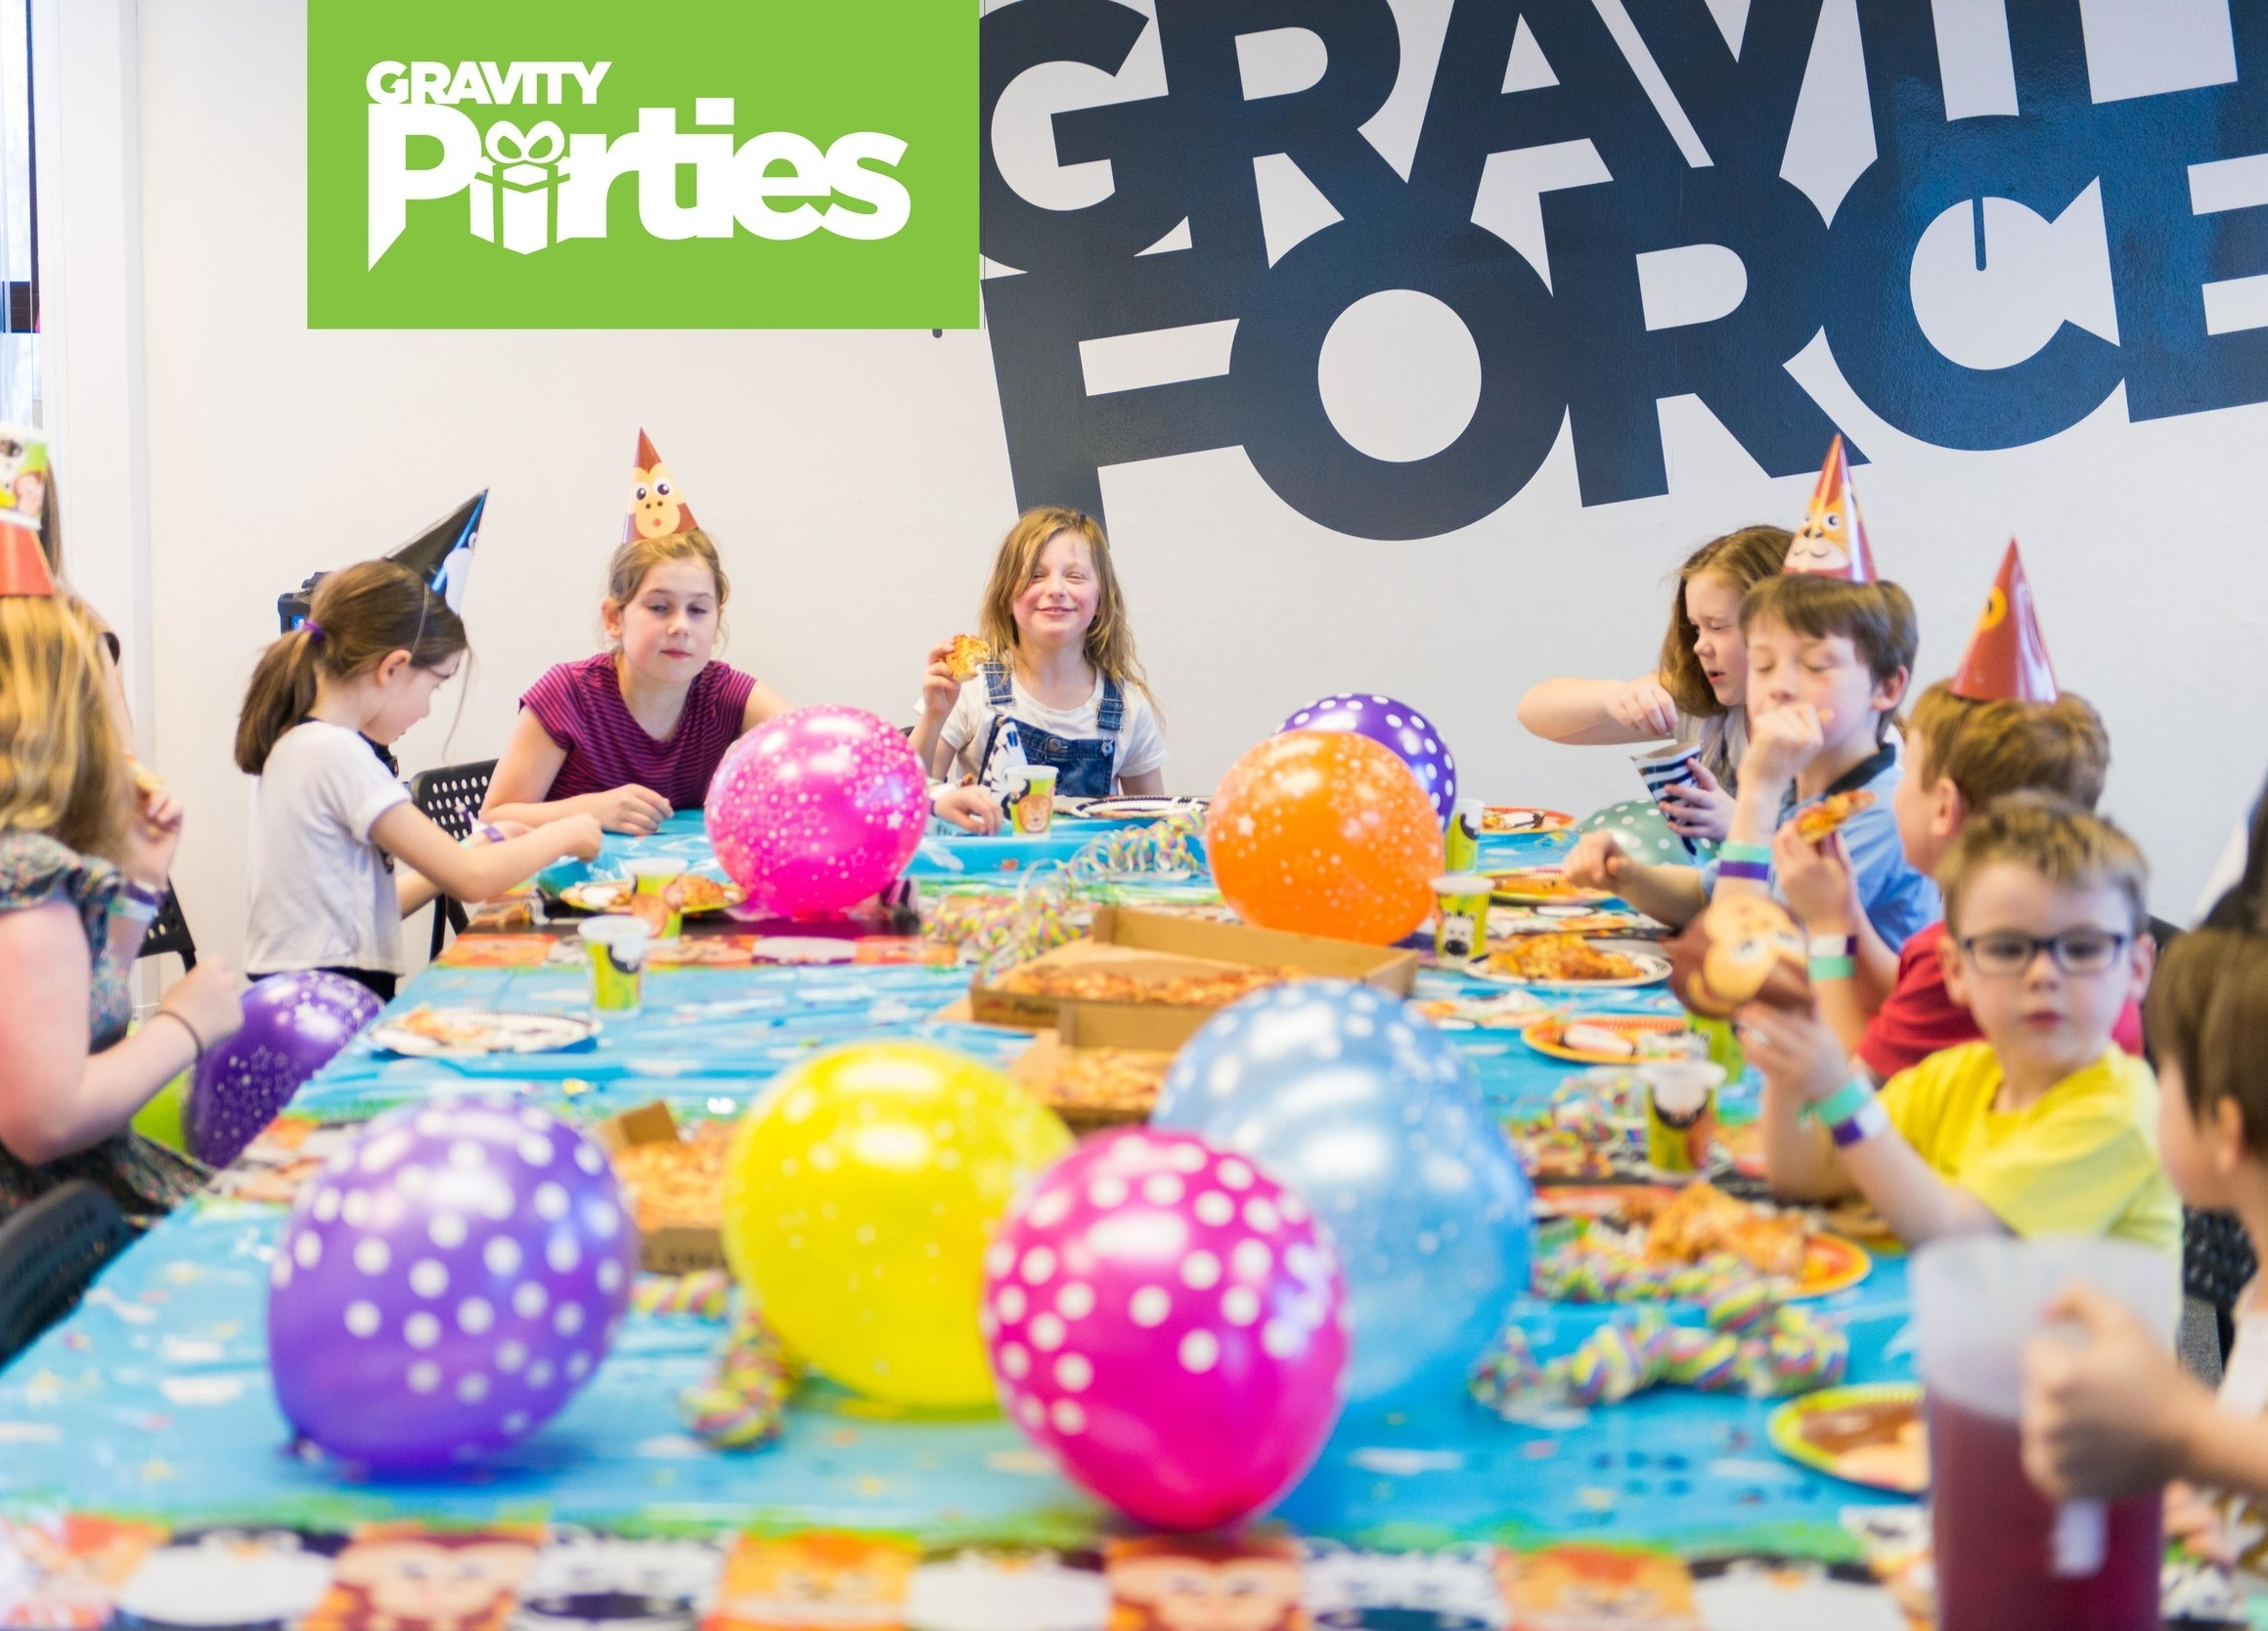 If you're looking for fun children's party ideas, bounce on over and leave all the organisation to us. A birthday party at Gravity Force will knock their trampoline socks off!